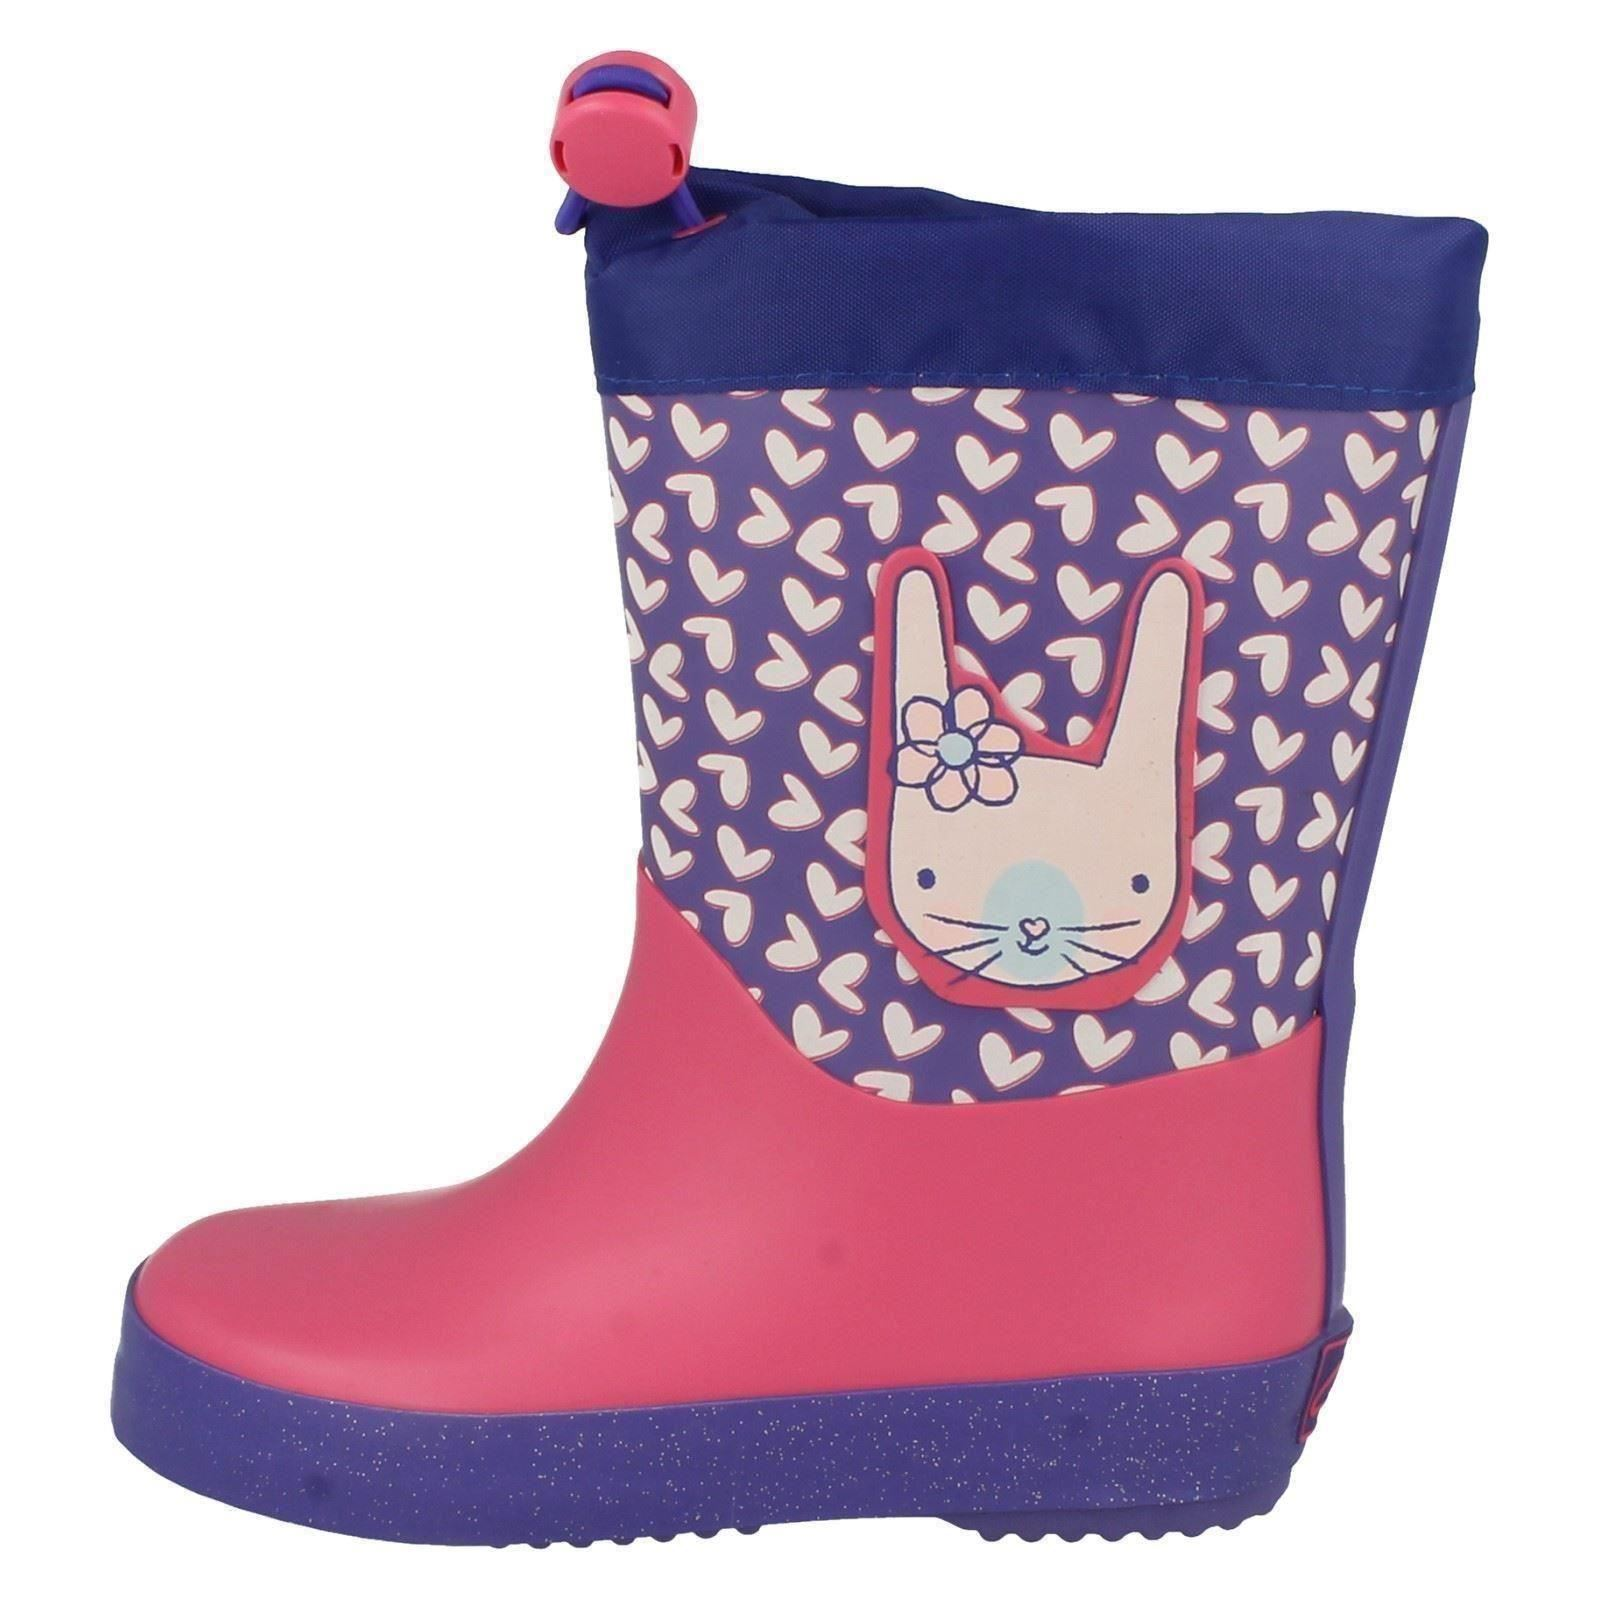 Clarks Girls Rabbit Themed Wellingtons - Tarri Ava